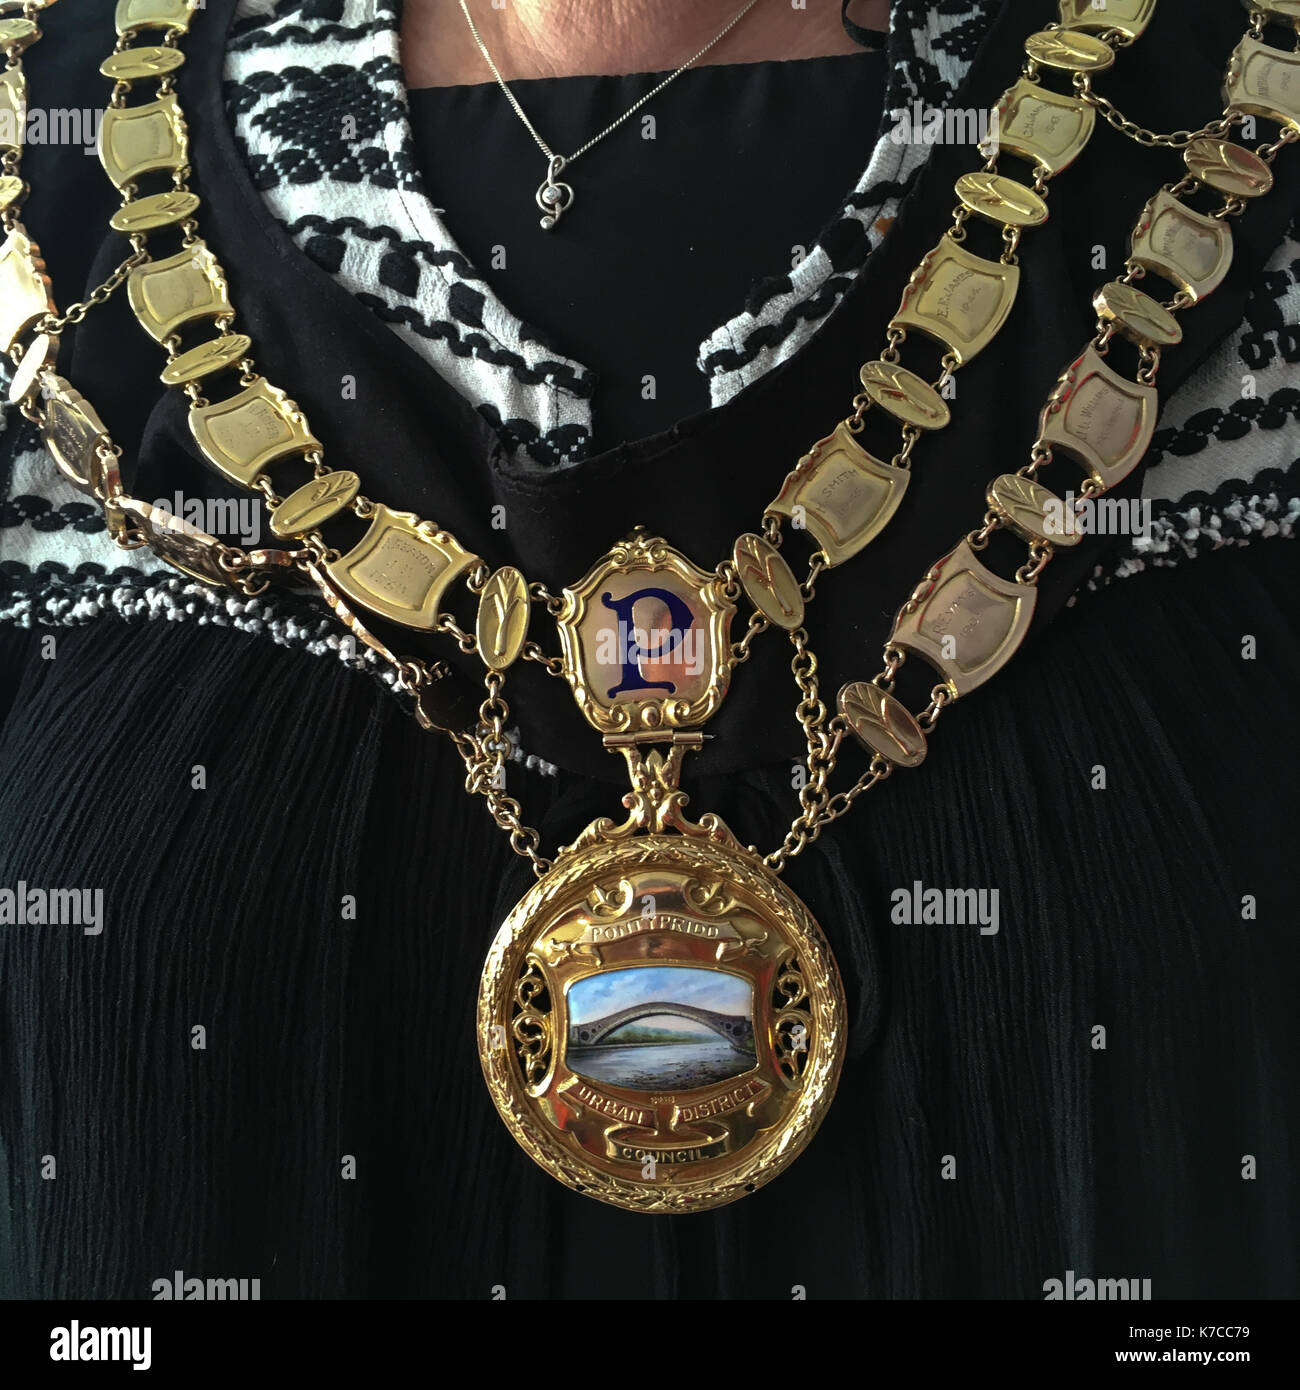 Mayor's chains in Pontypridd, in Wales, on 15 September 2017. - Stock Image